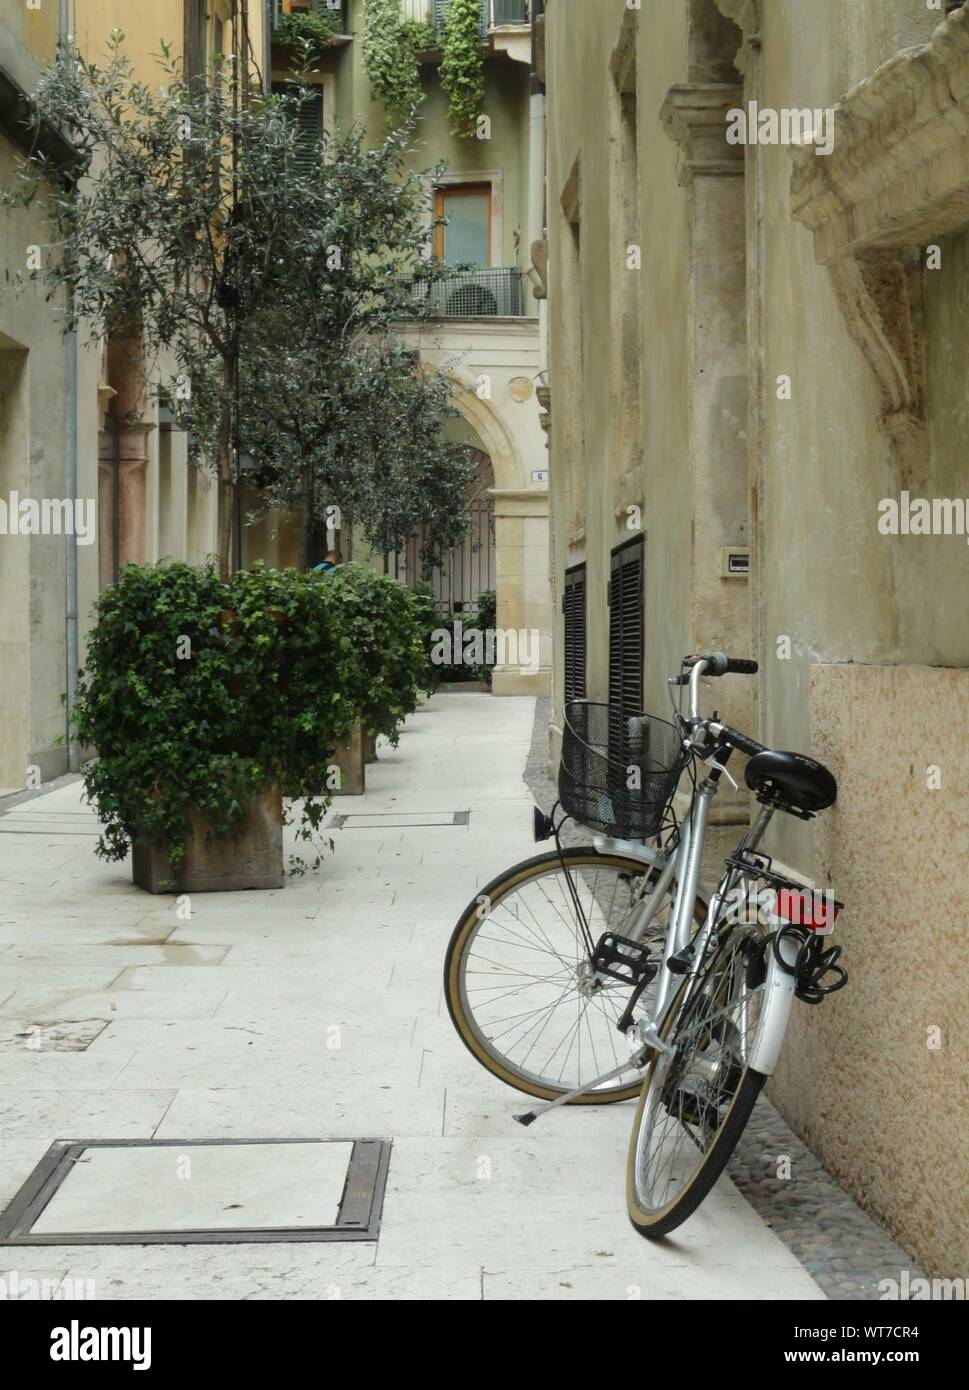 Bicycle Leaning Against Wall In Alley Stock Photo